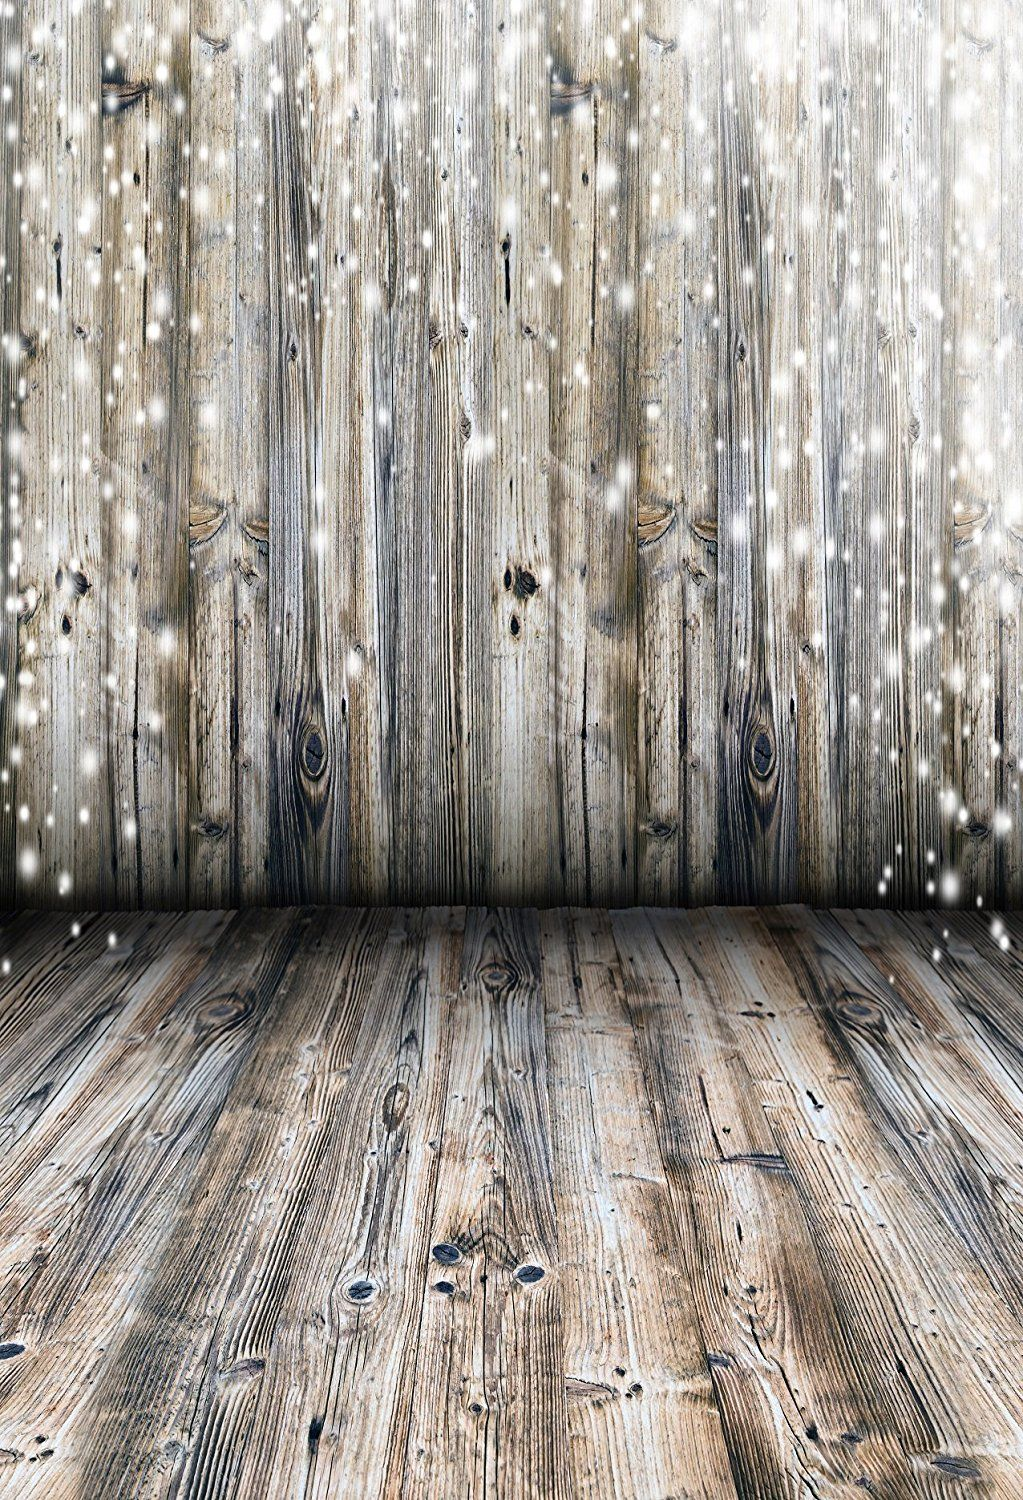 Amazon.com : 5x7ft Light Grey Wood Wall Photography Backdrop Gray Wooden Floor  Photo Backgrounds